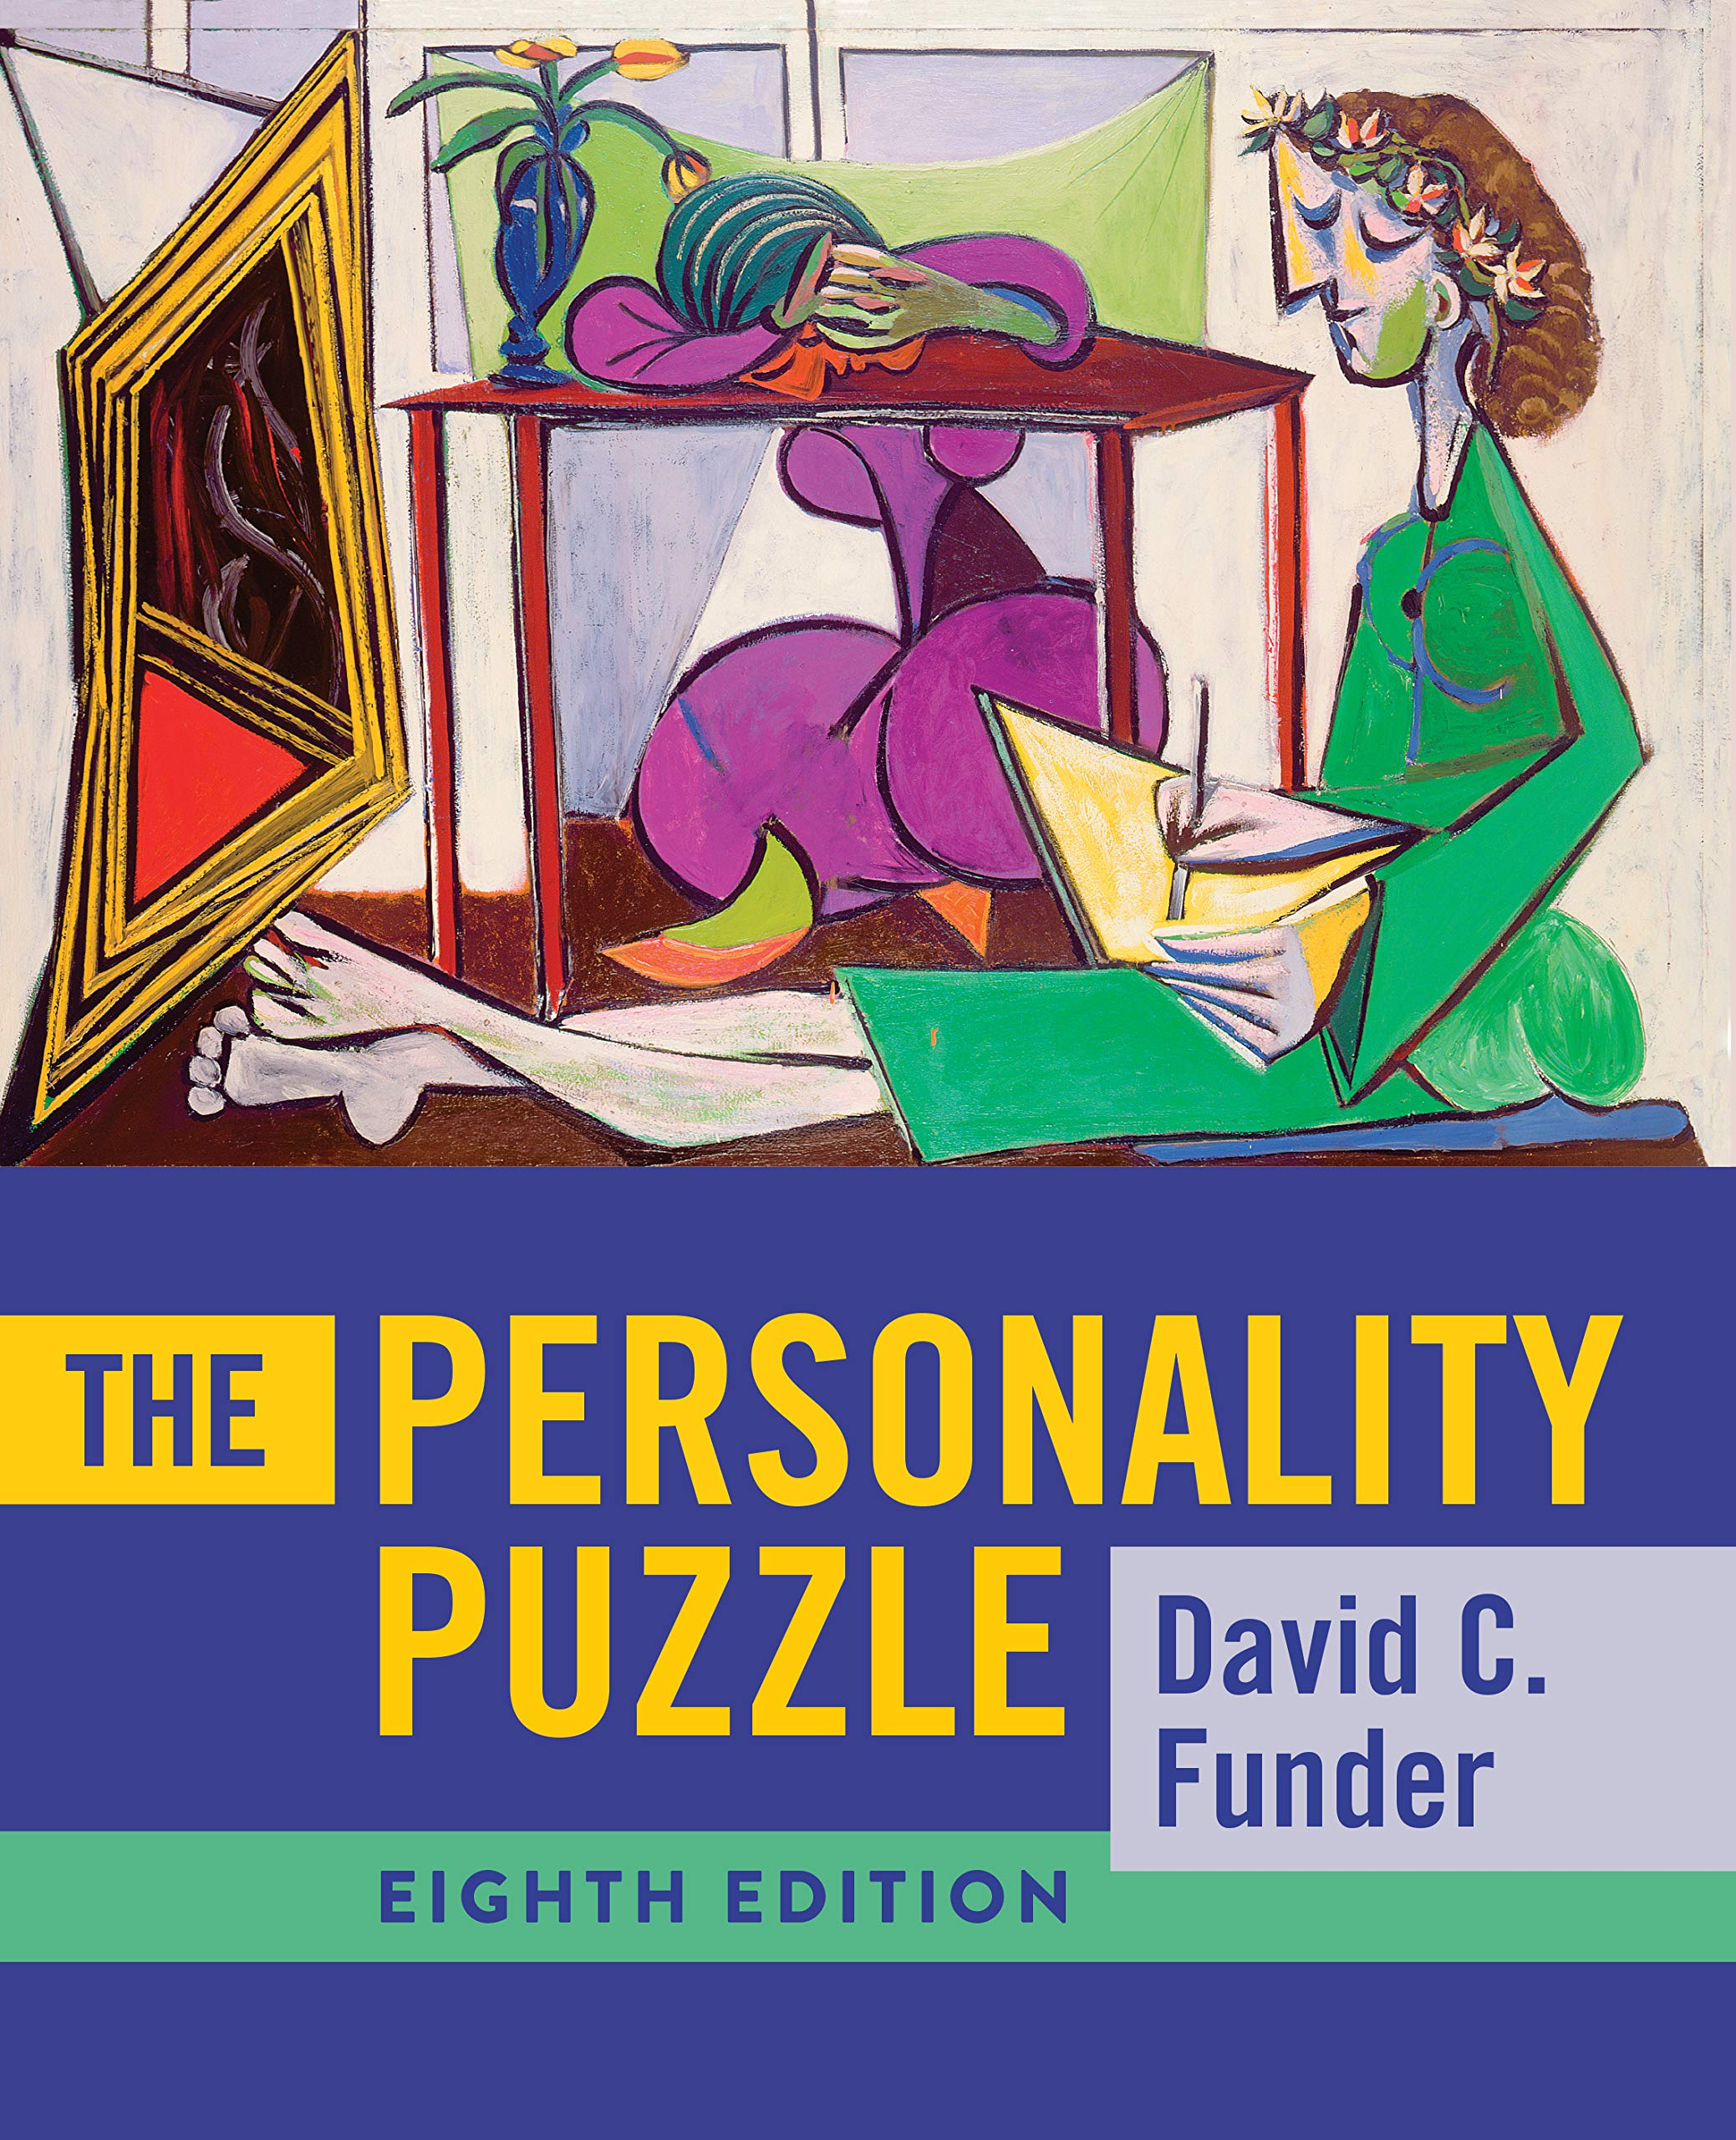 The Personality Puzzle (Eighth Edition)